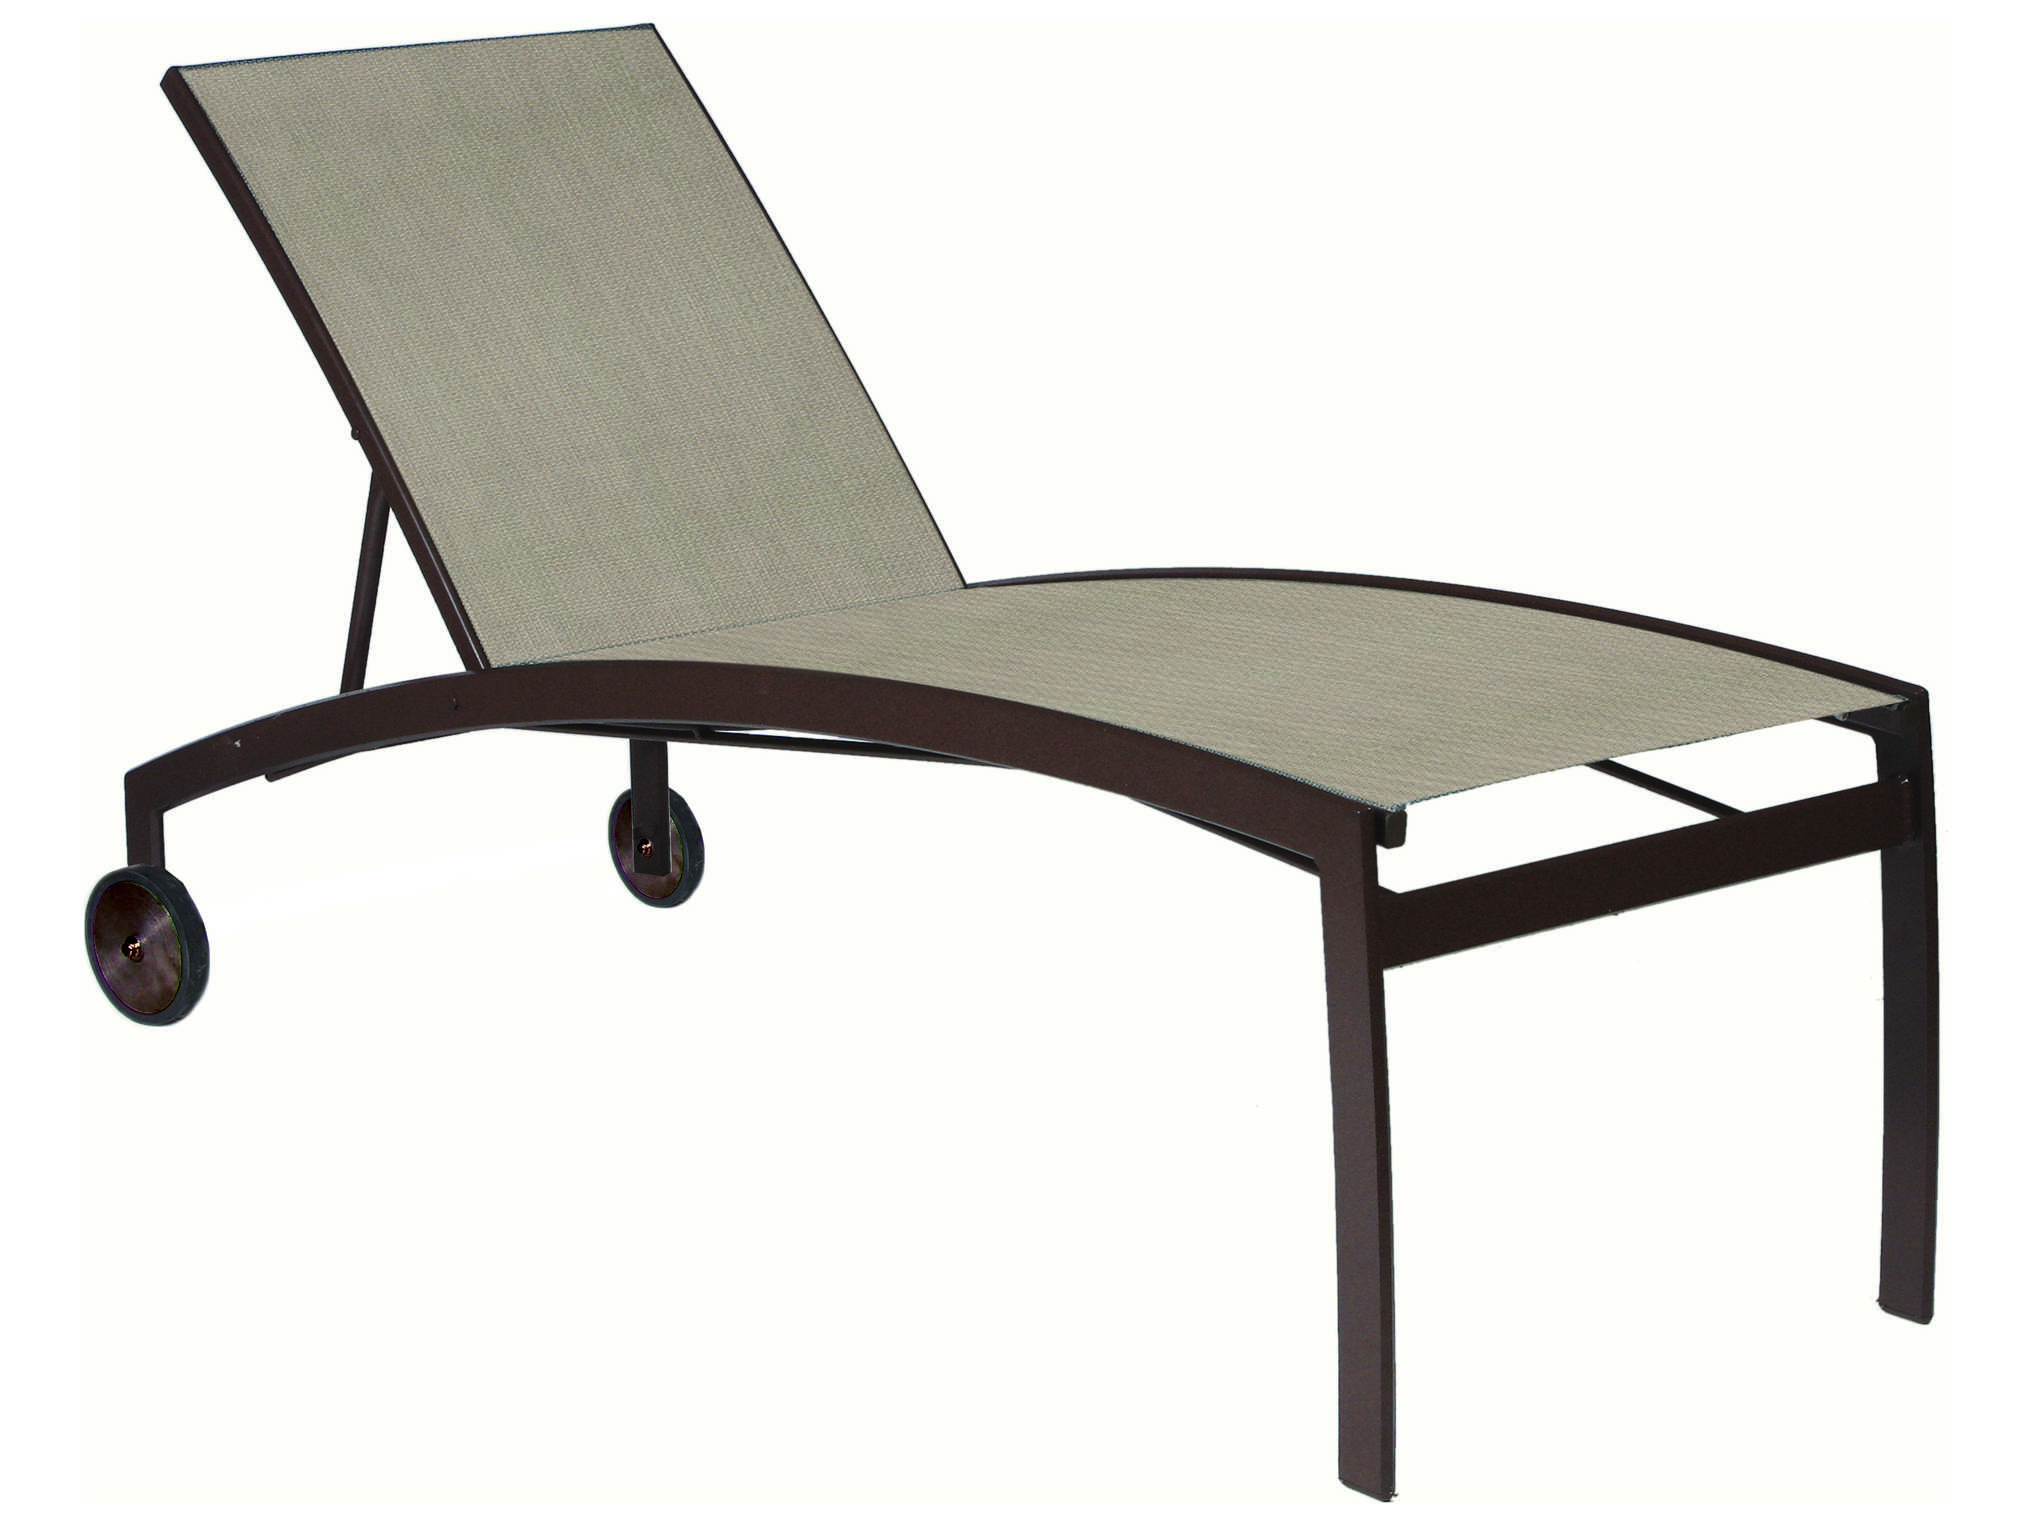 Suncoast vision sling cast aluminum chaise lounge with for Chaise longue aluminium et textilene